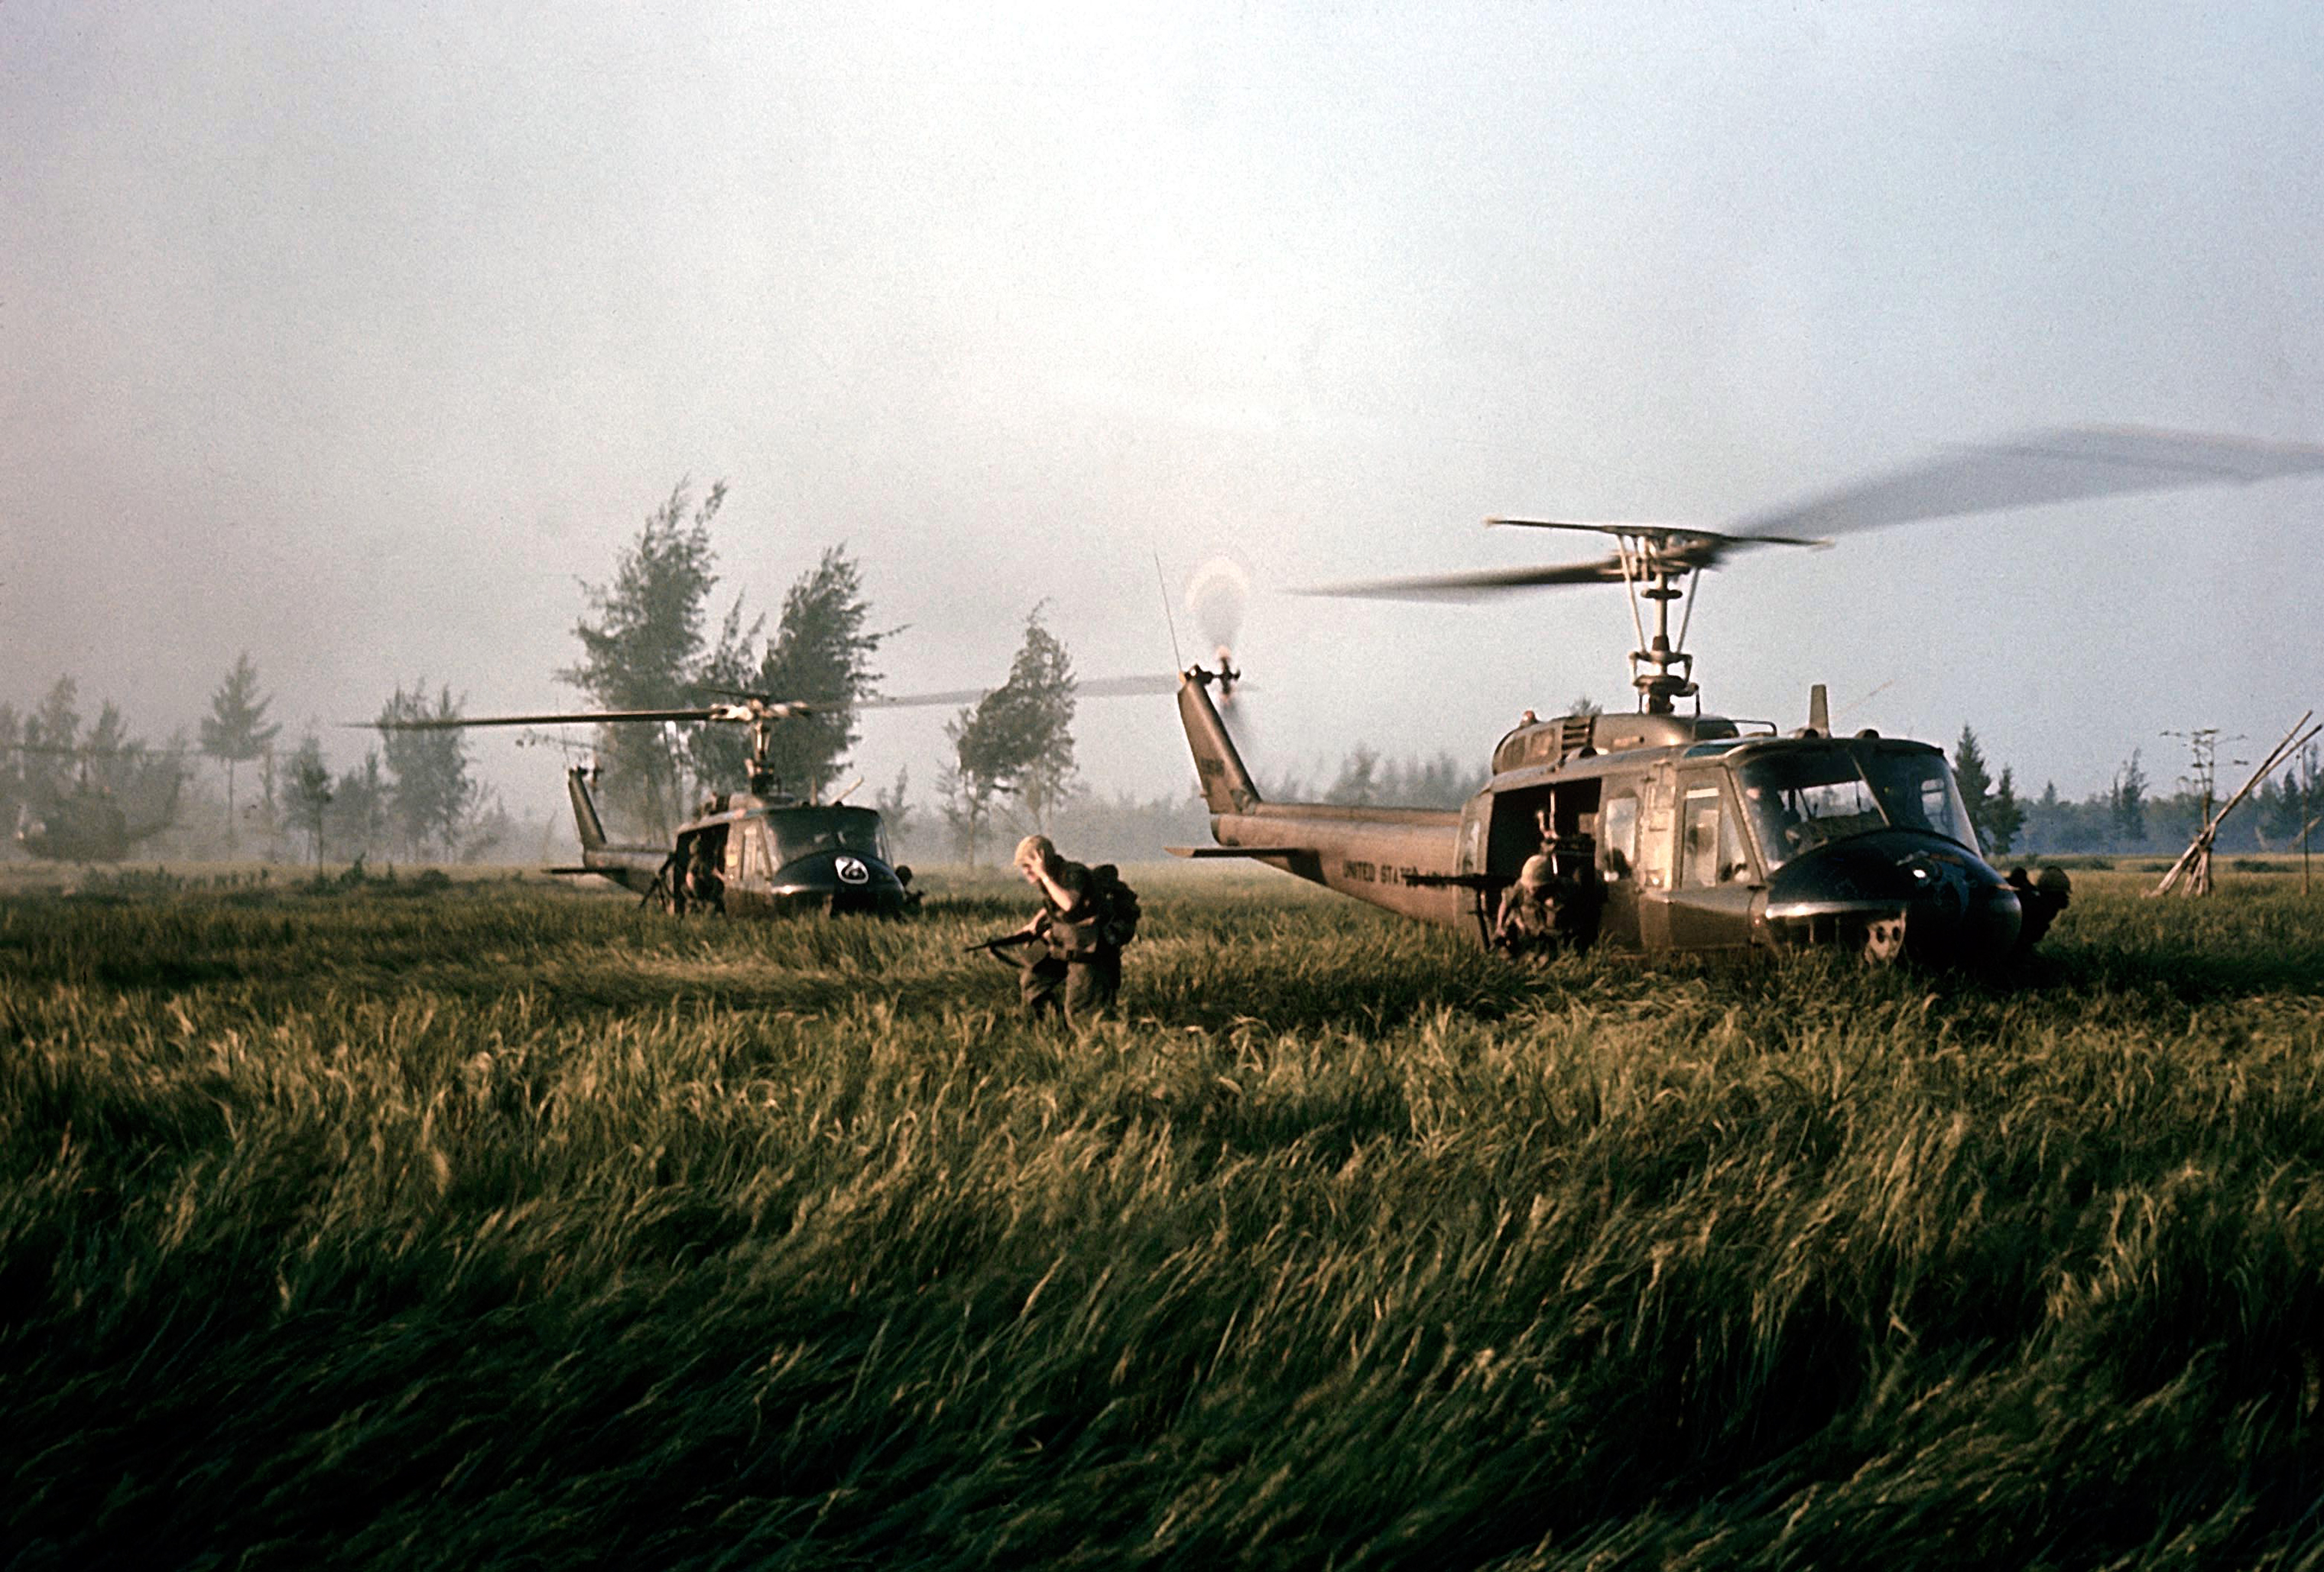 The American helicopters that brought Company C soldiers to My Lai for the assault.